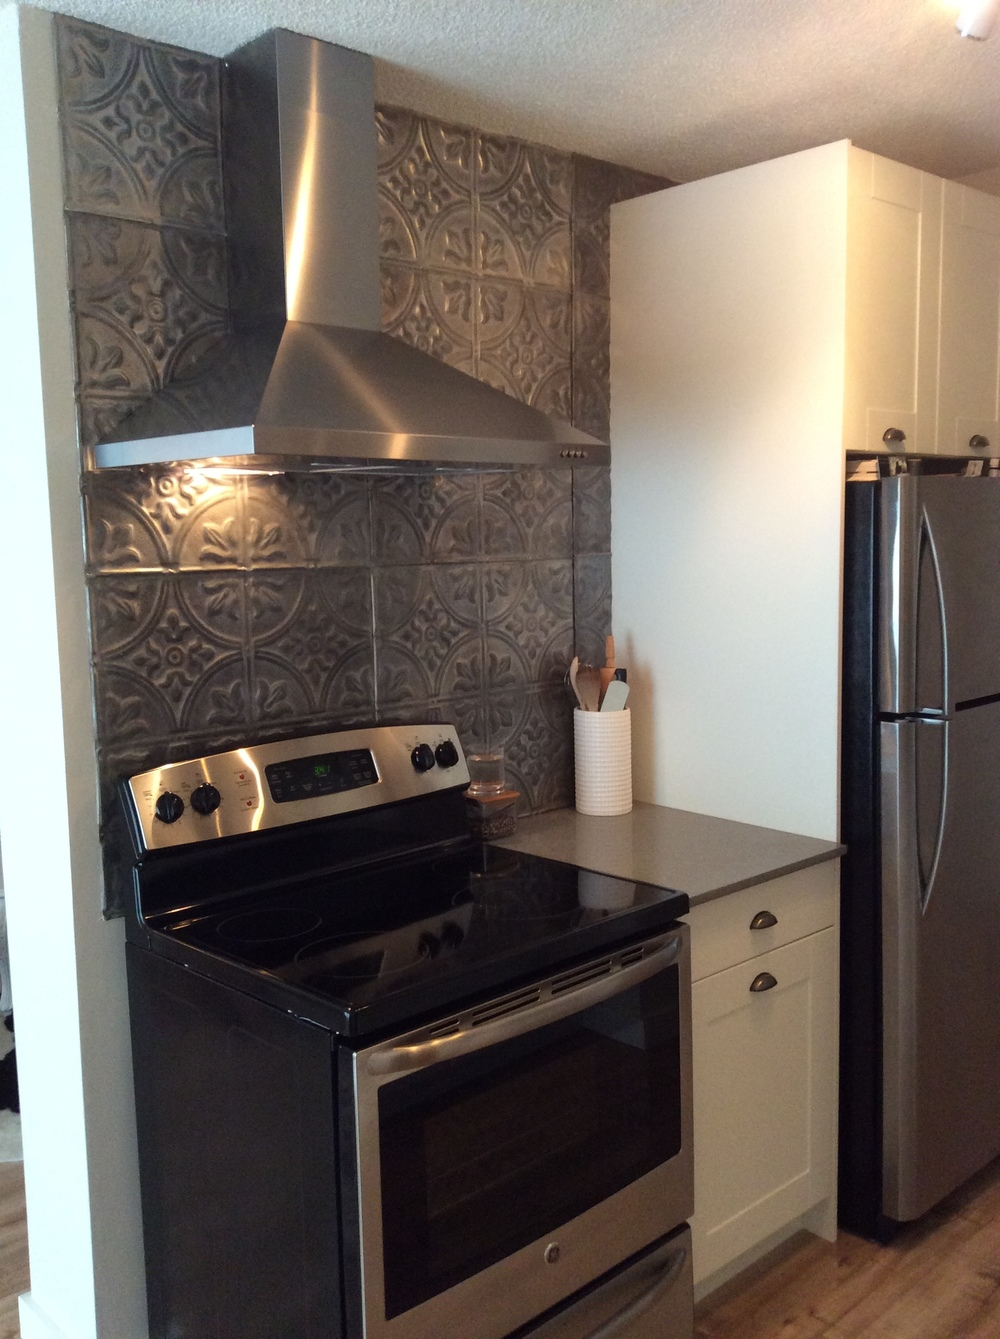 Ikea kitchen, tin tile backsplash, and stainless steel range and range hood.